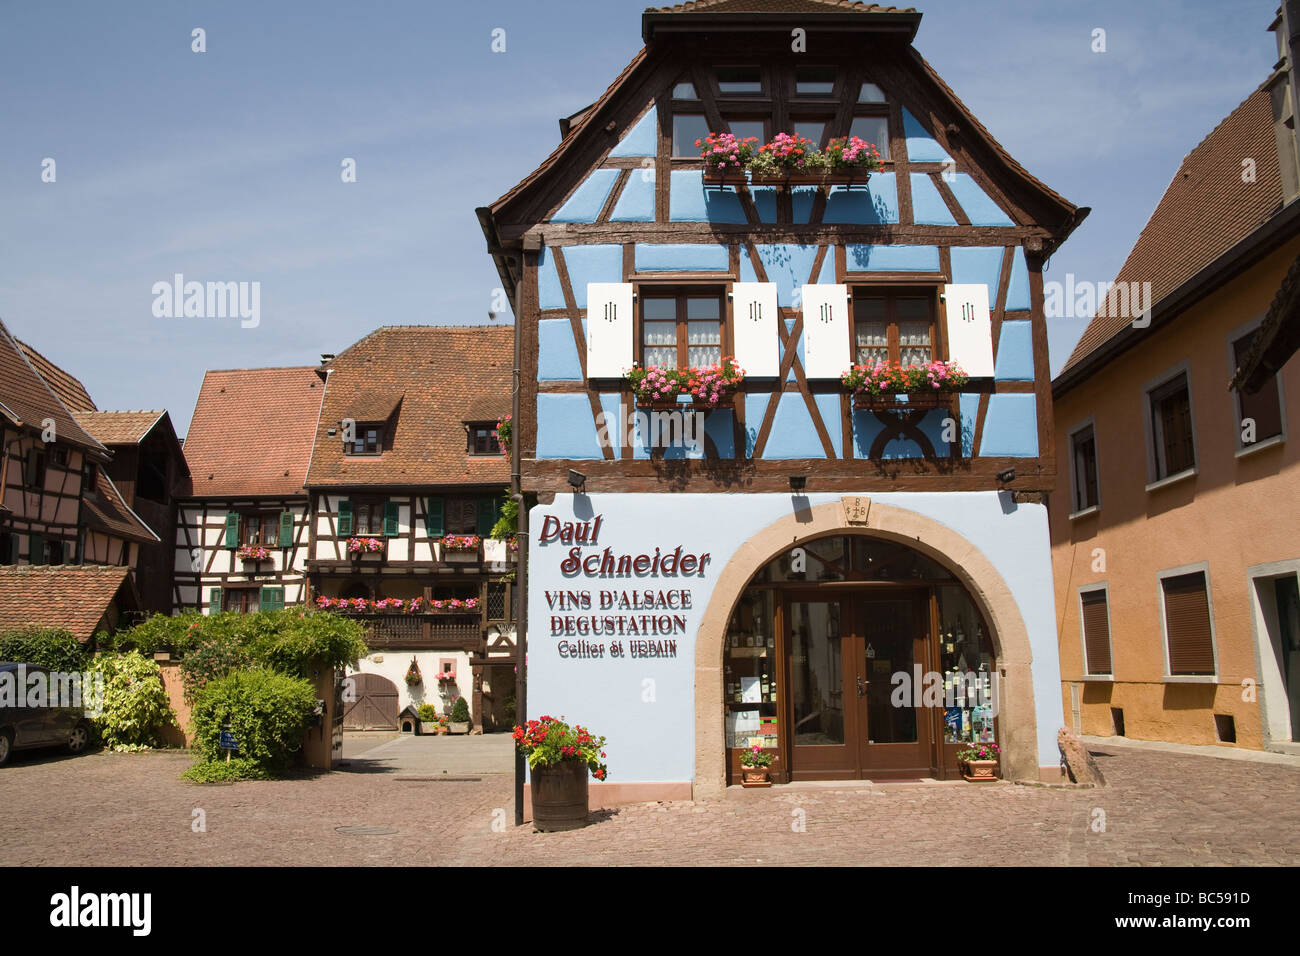 Eguisheim Alsace France EU Typical half timbered buildings of the region in a cobbled courtyard of this medieval - Stock Image